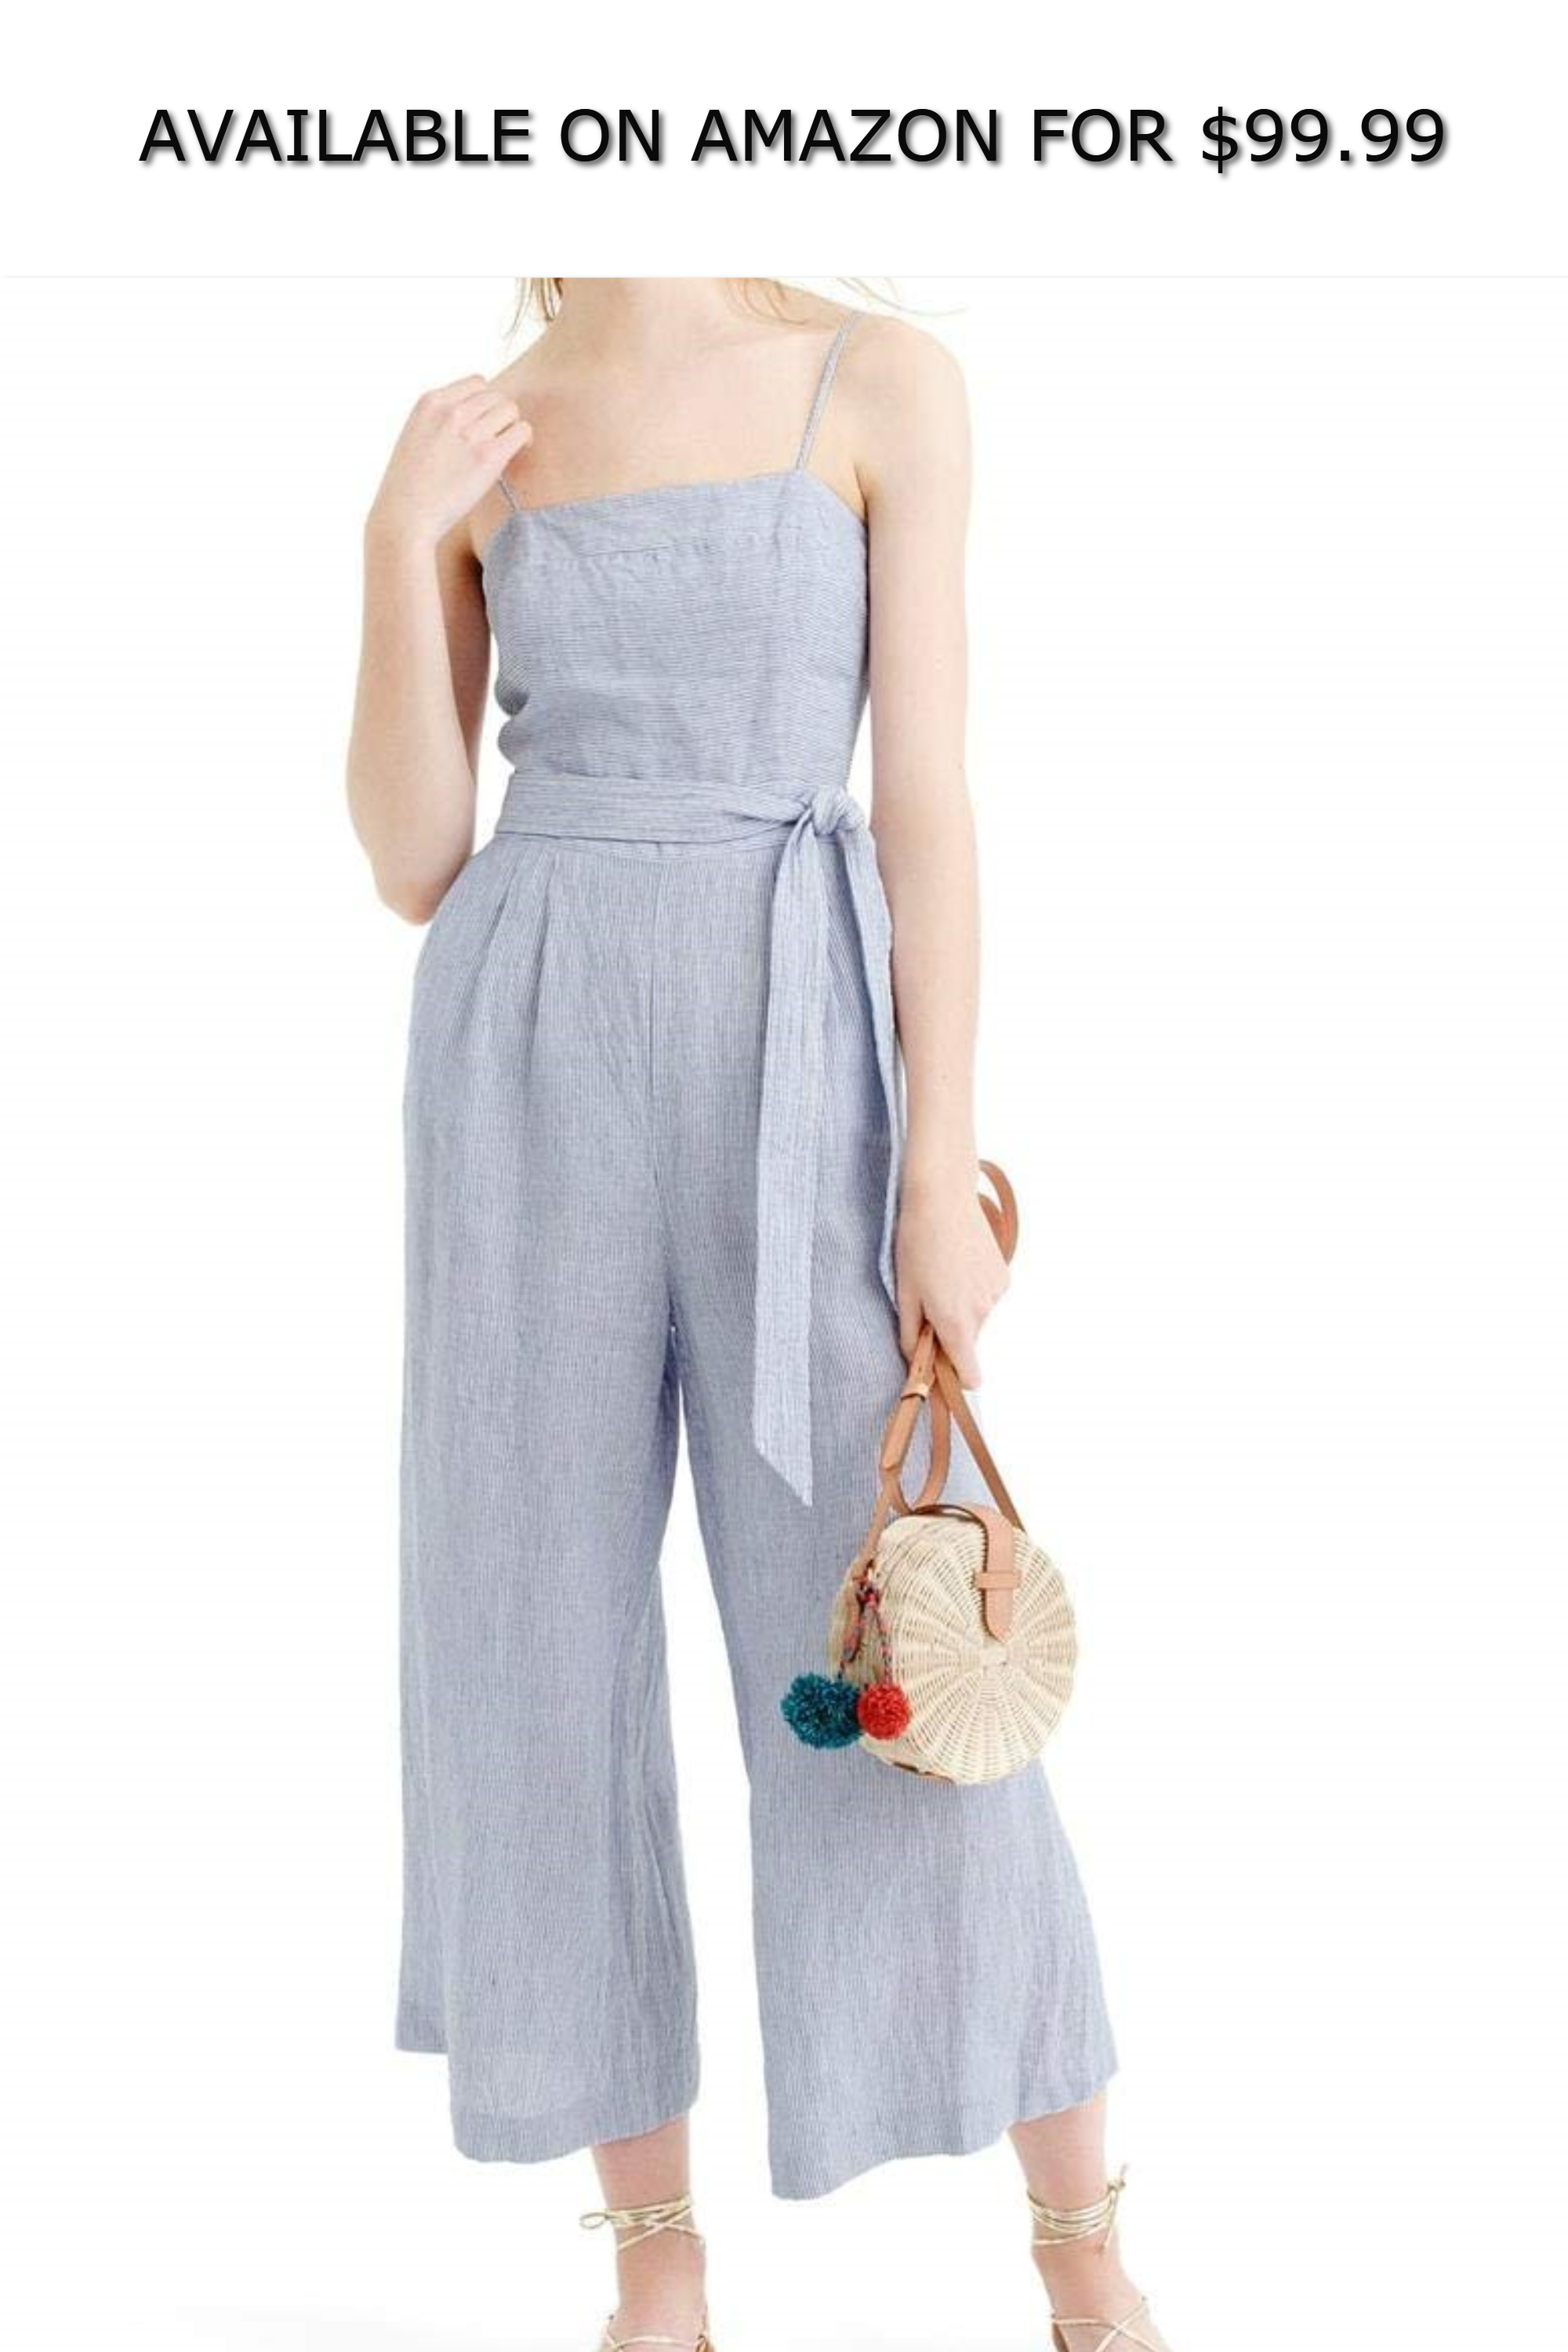 a4b66307480 J Crew Petite Linen Tie Waist Striped Jumpsuit Size 10 Style G6579 ◇  AVAILABLE ON AMAZON